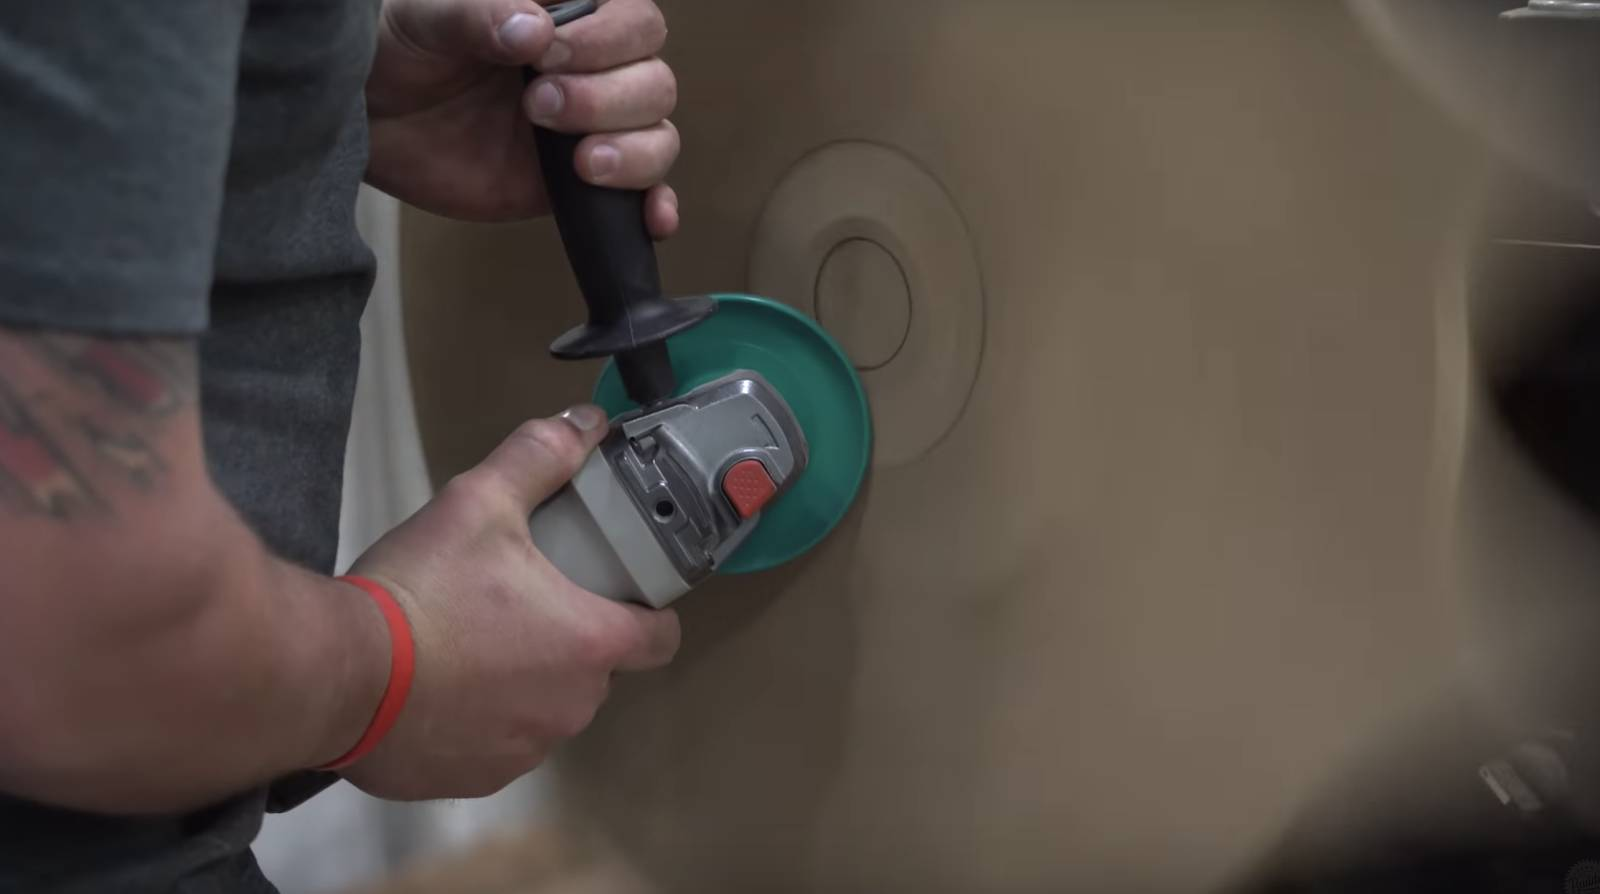 John malecki uses angle grinder on a turning piece of wood